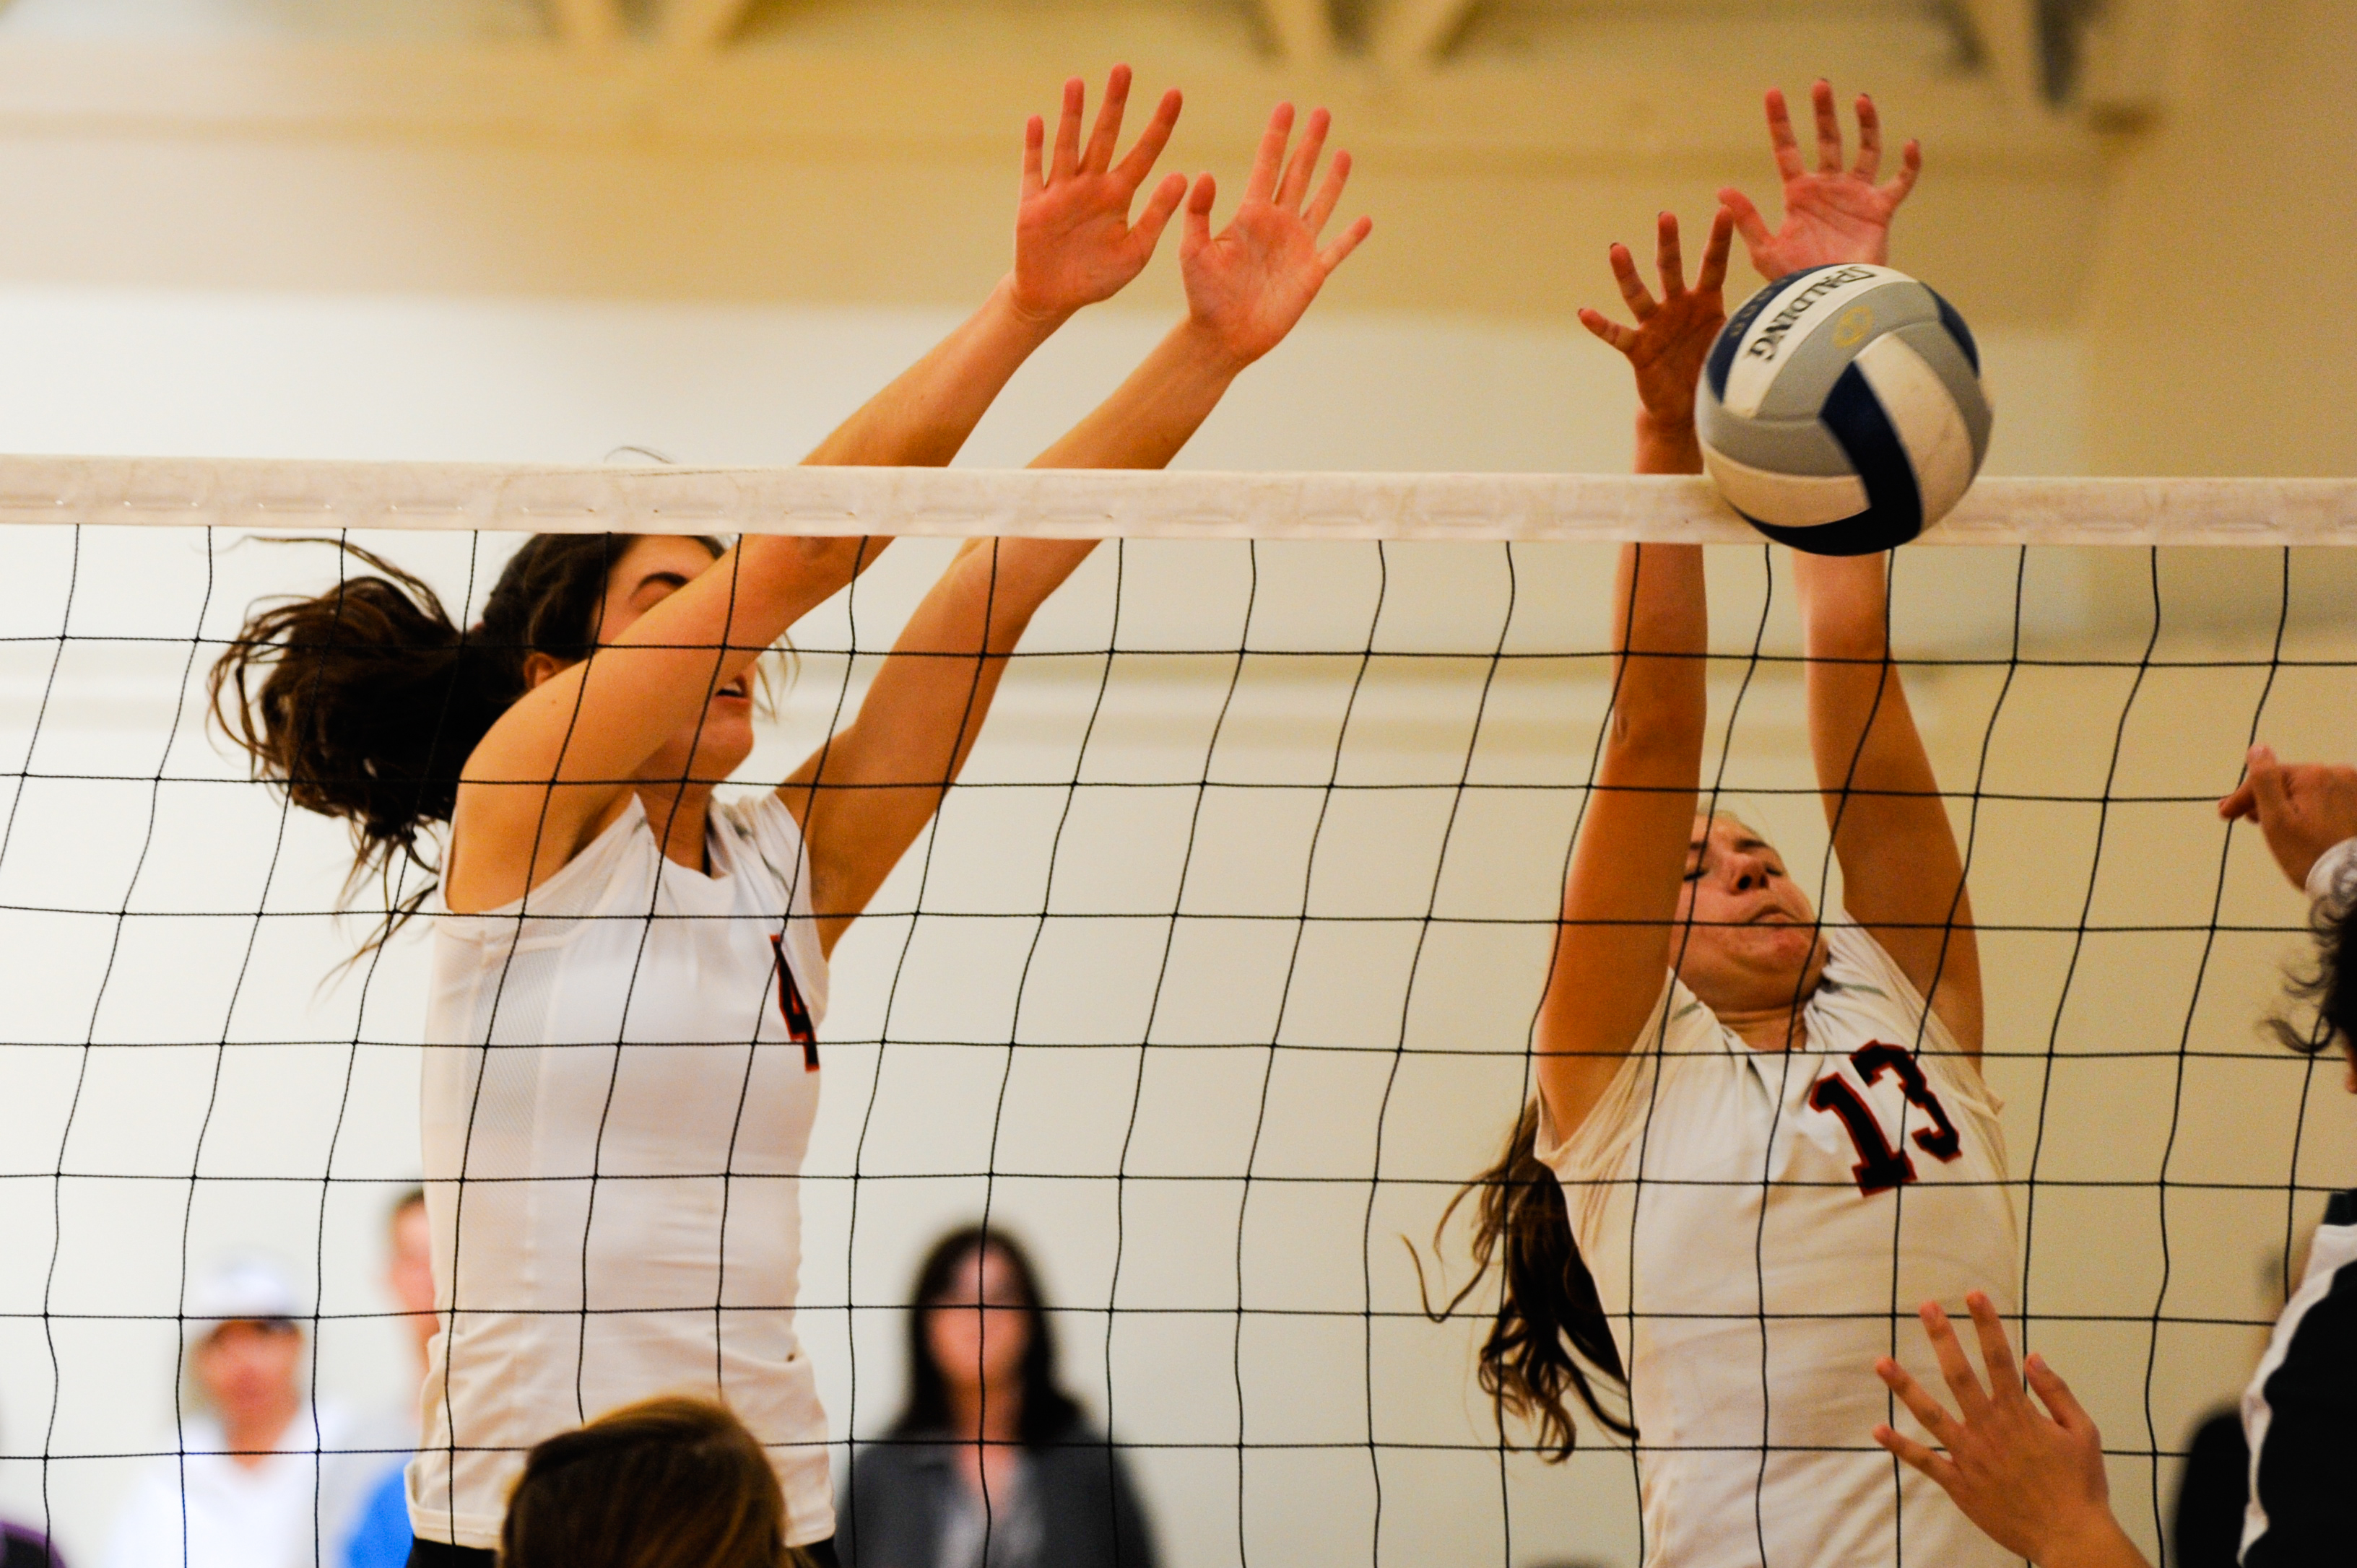 http://www.volleywood.net/wp-content/uploads/2011/11/Harvard-Westlake-High-School-Volleyball-7.jpg